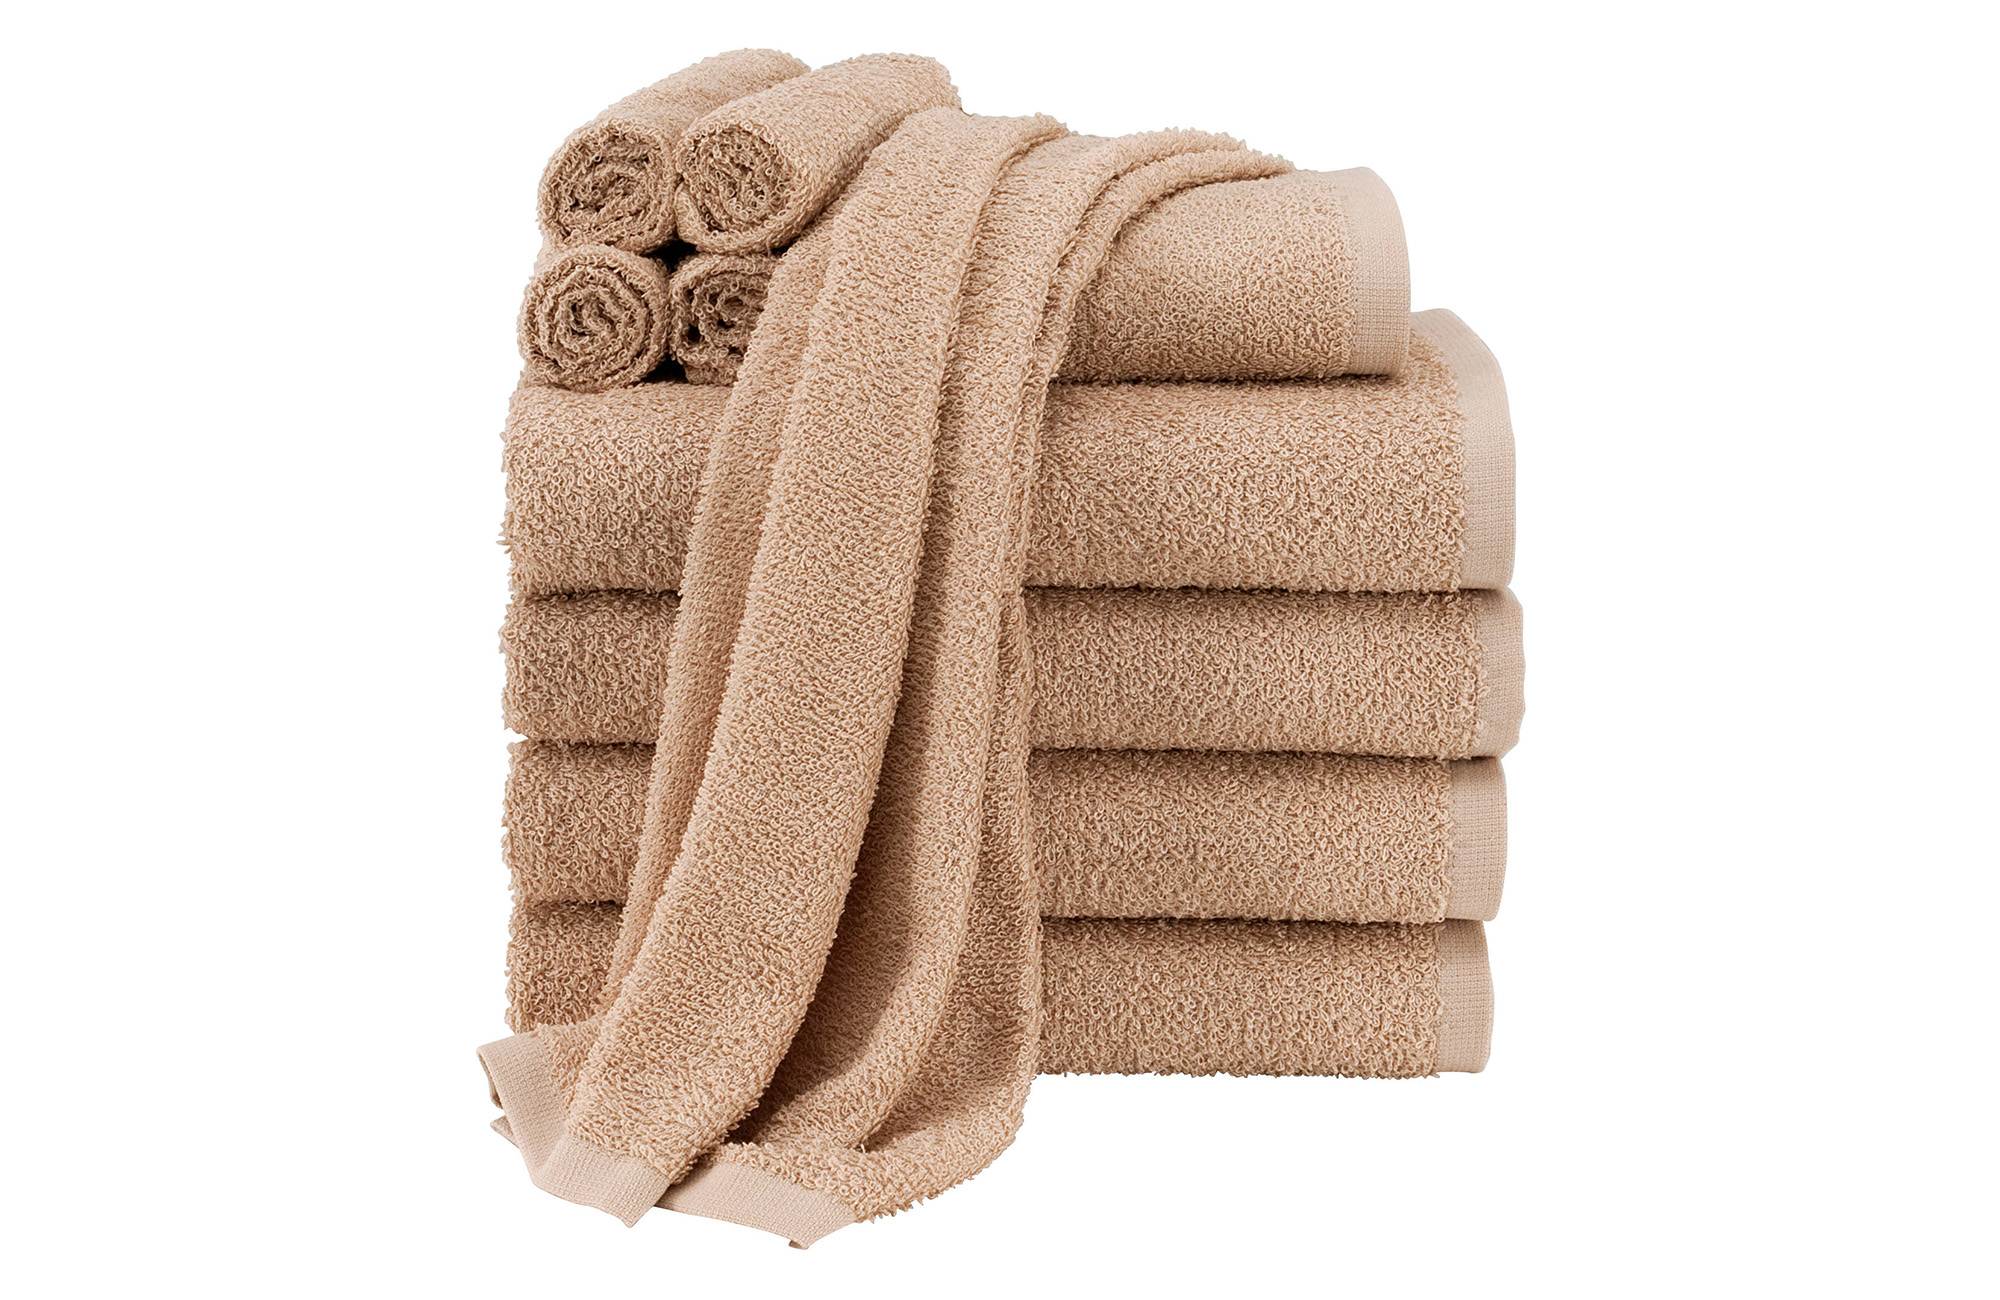 Best Budget Bath Towels: Walmart Mainstays Value Terry Cotton Bath Towel Set